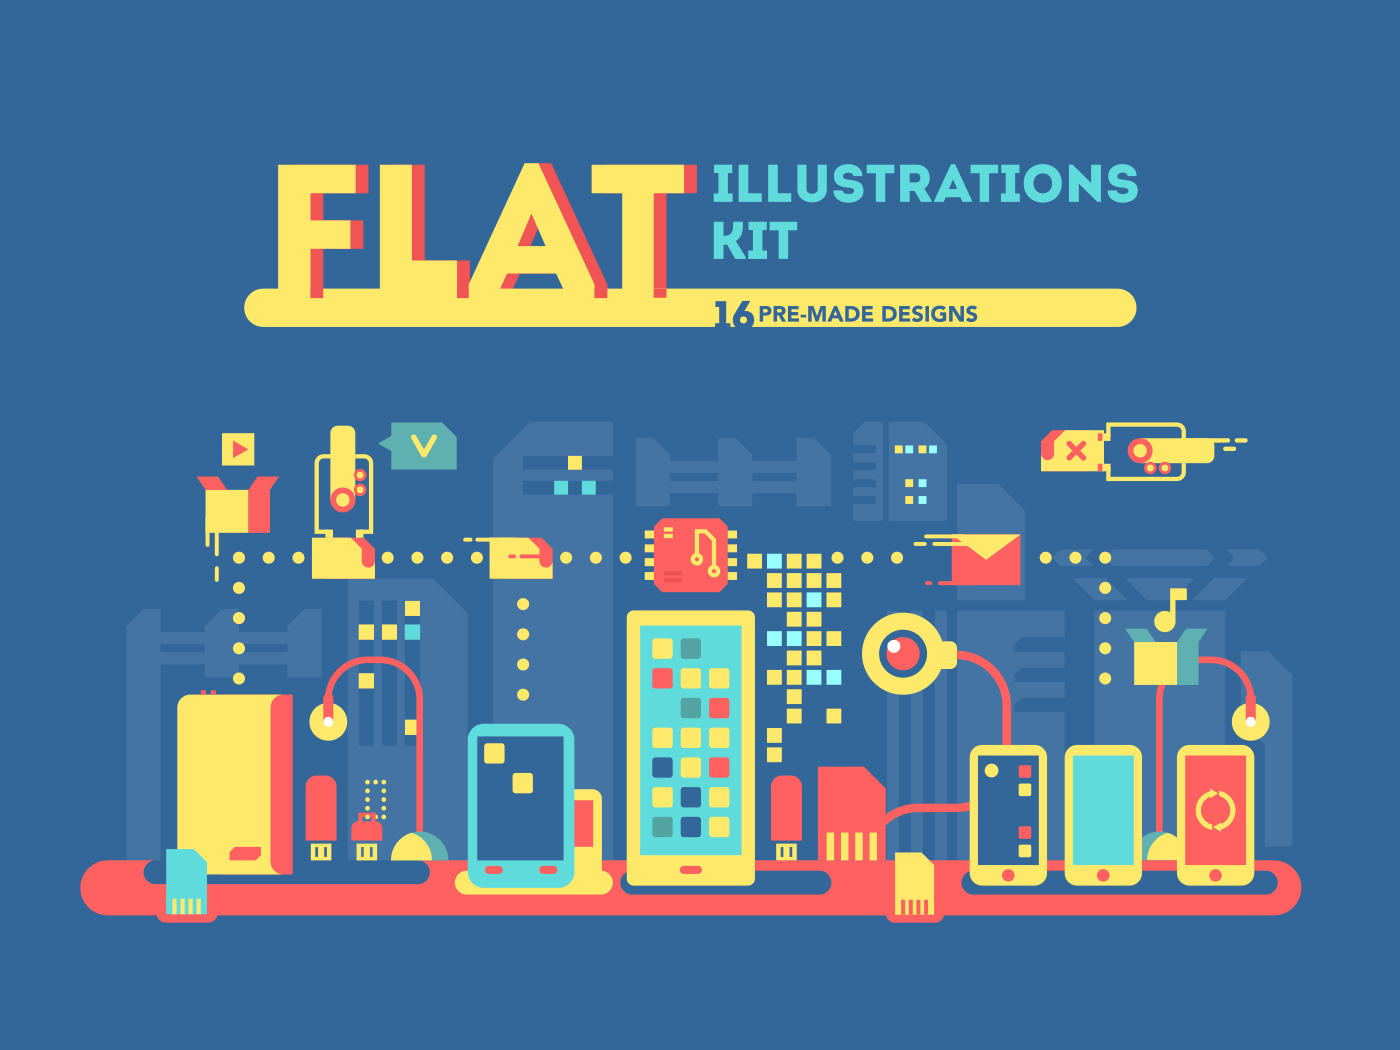 Flat vector illustrations kit